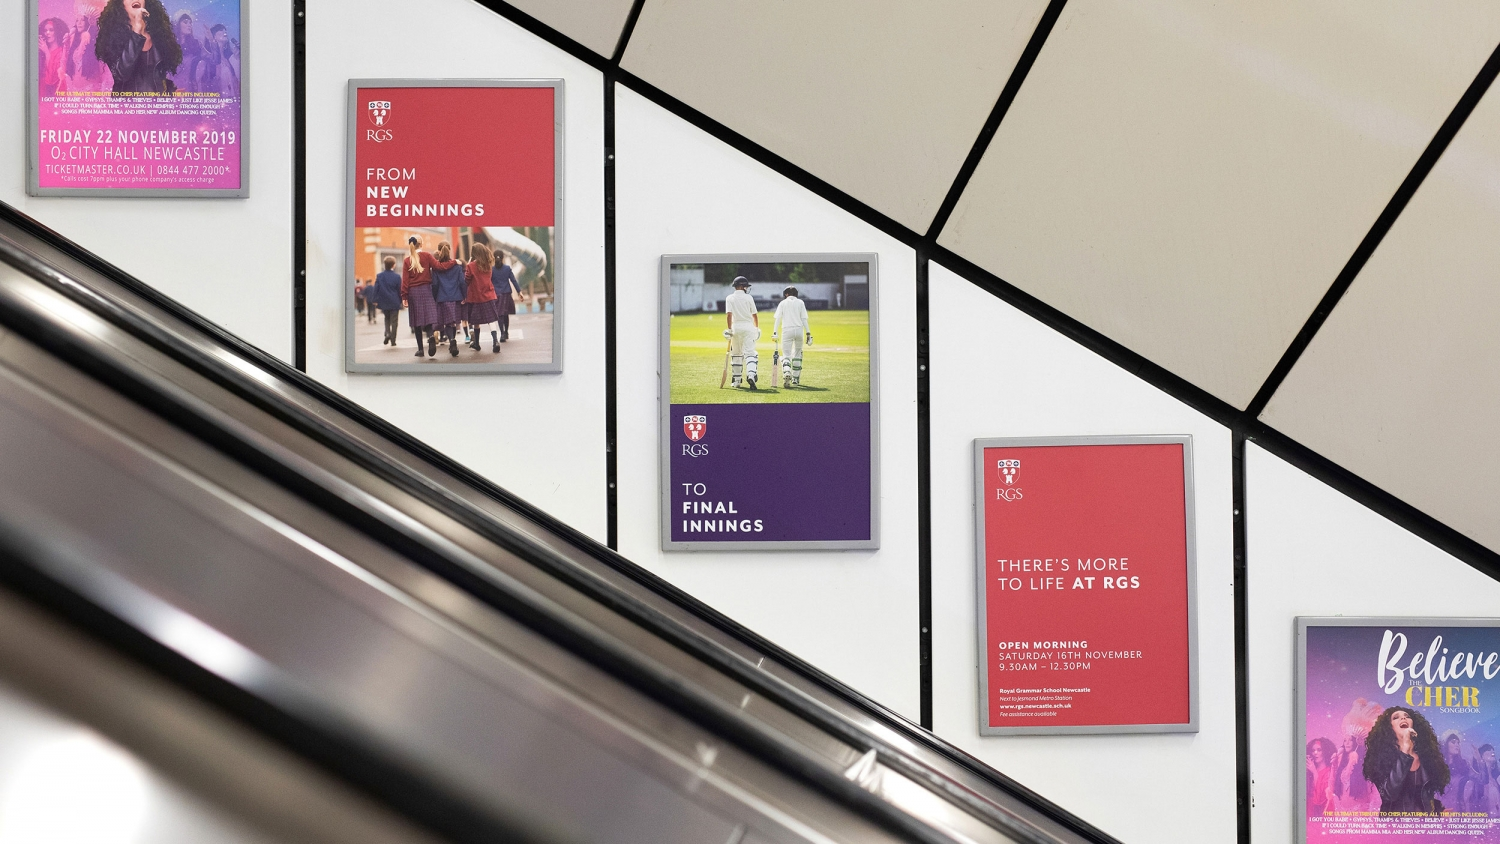 RGS Royal Grammar School Newcastle independent school education advertising campaign by Altogether Creative.